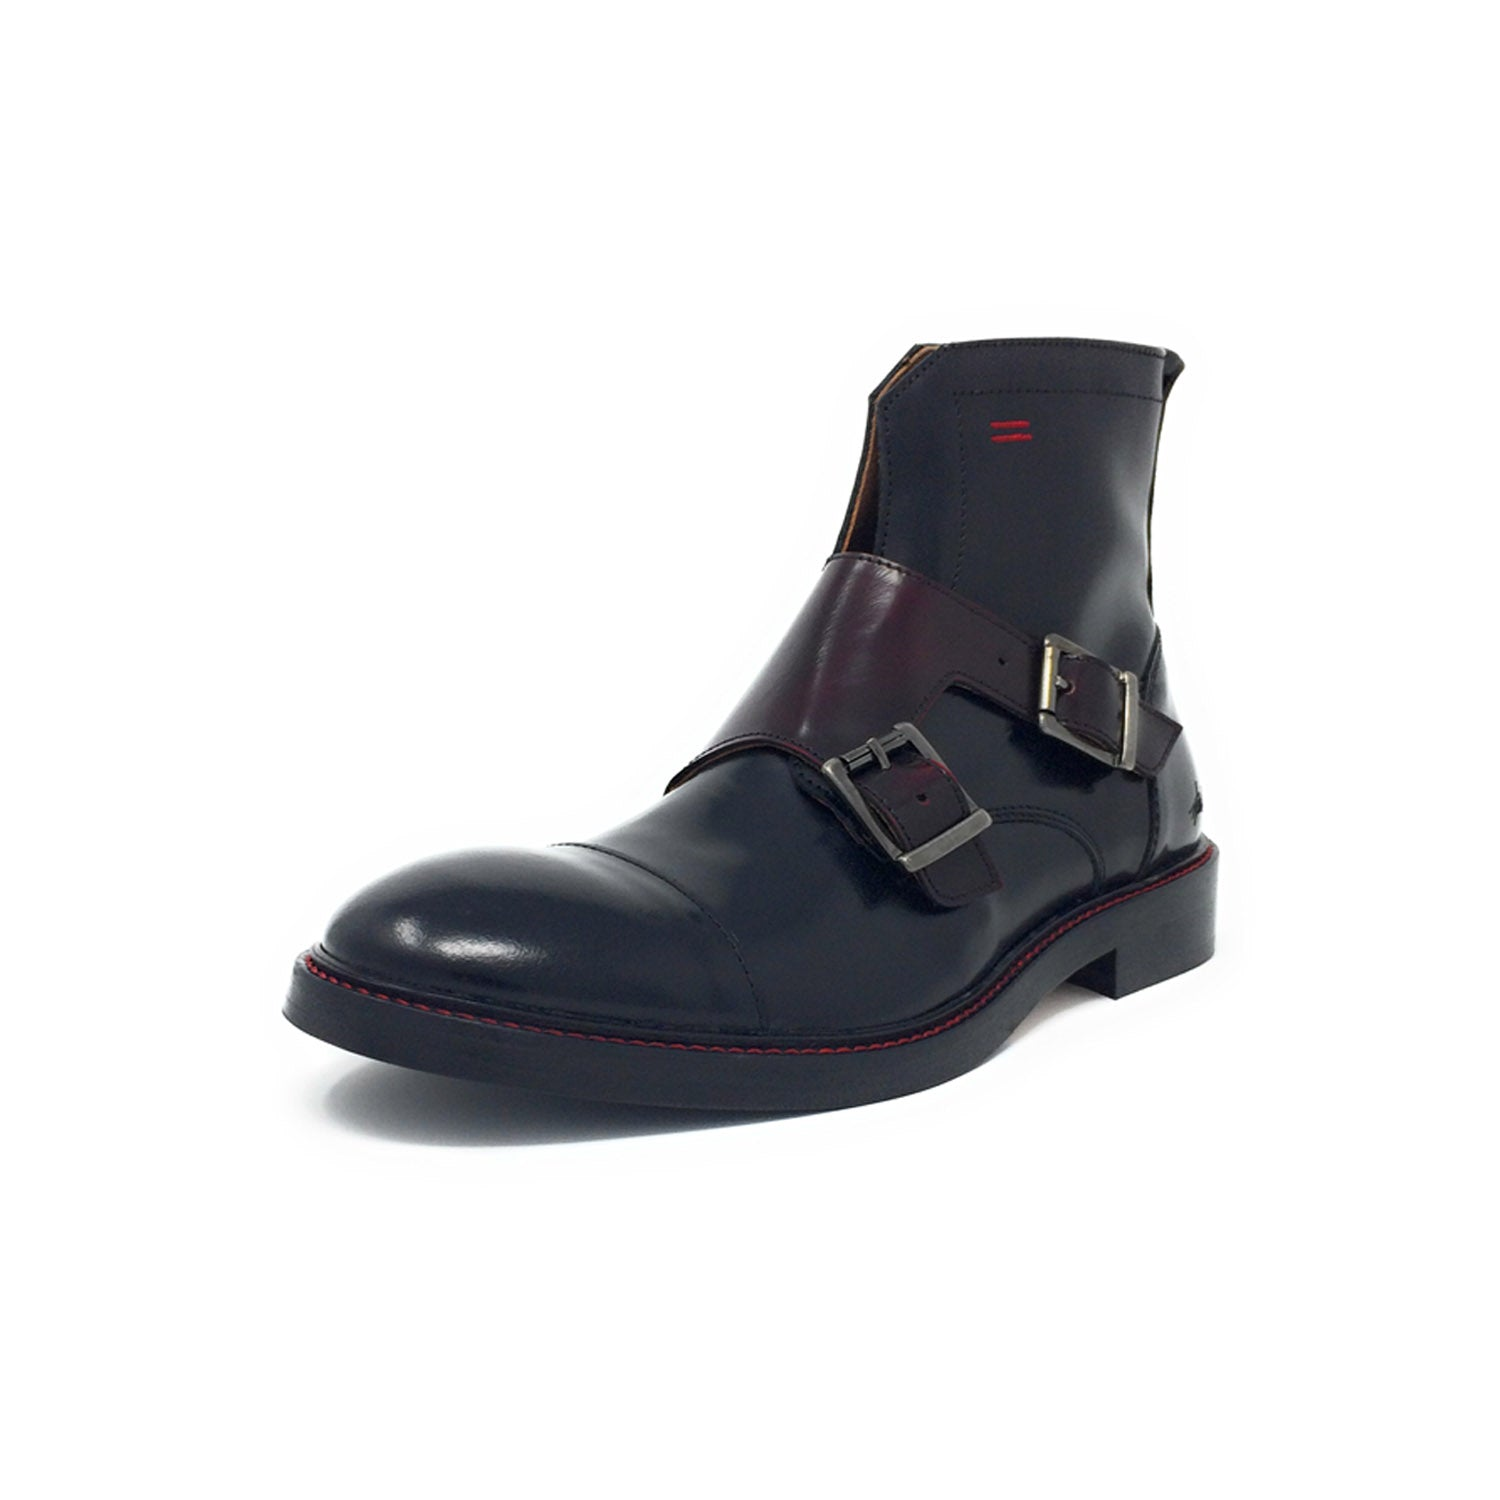 NiK Kacy Gender-Equal Gender-Neutral Luxury Monkstrap Boots in Deep Red and Black Genuine Leather